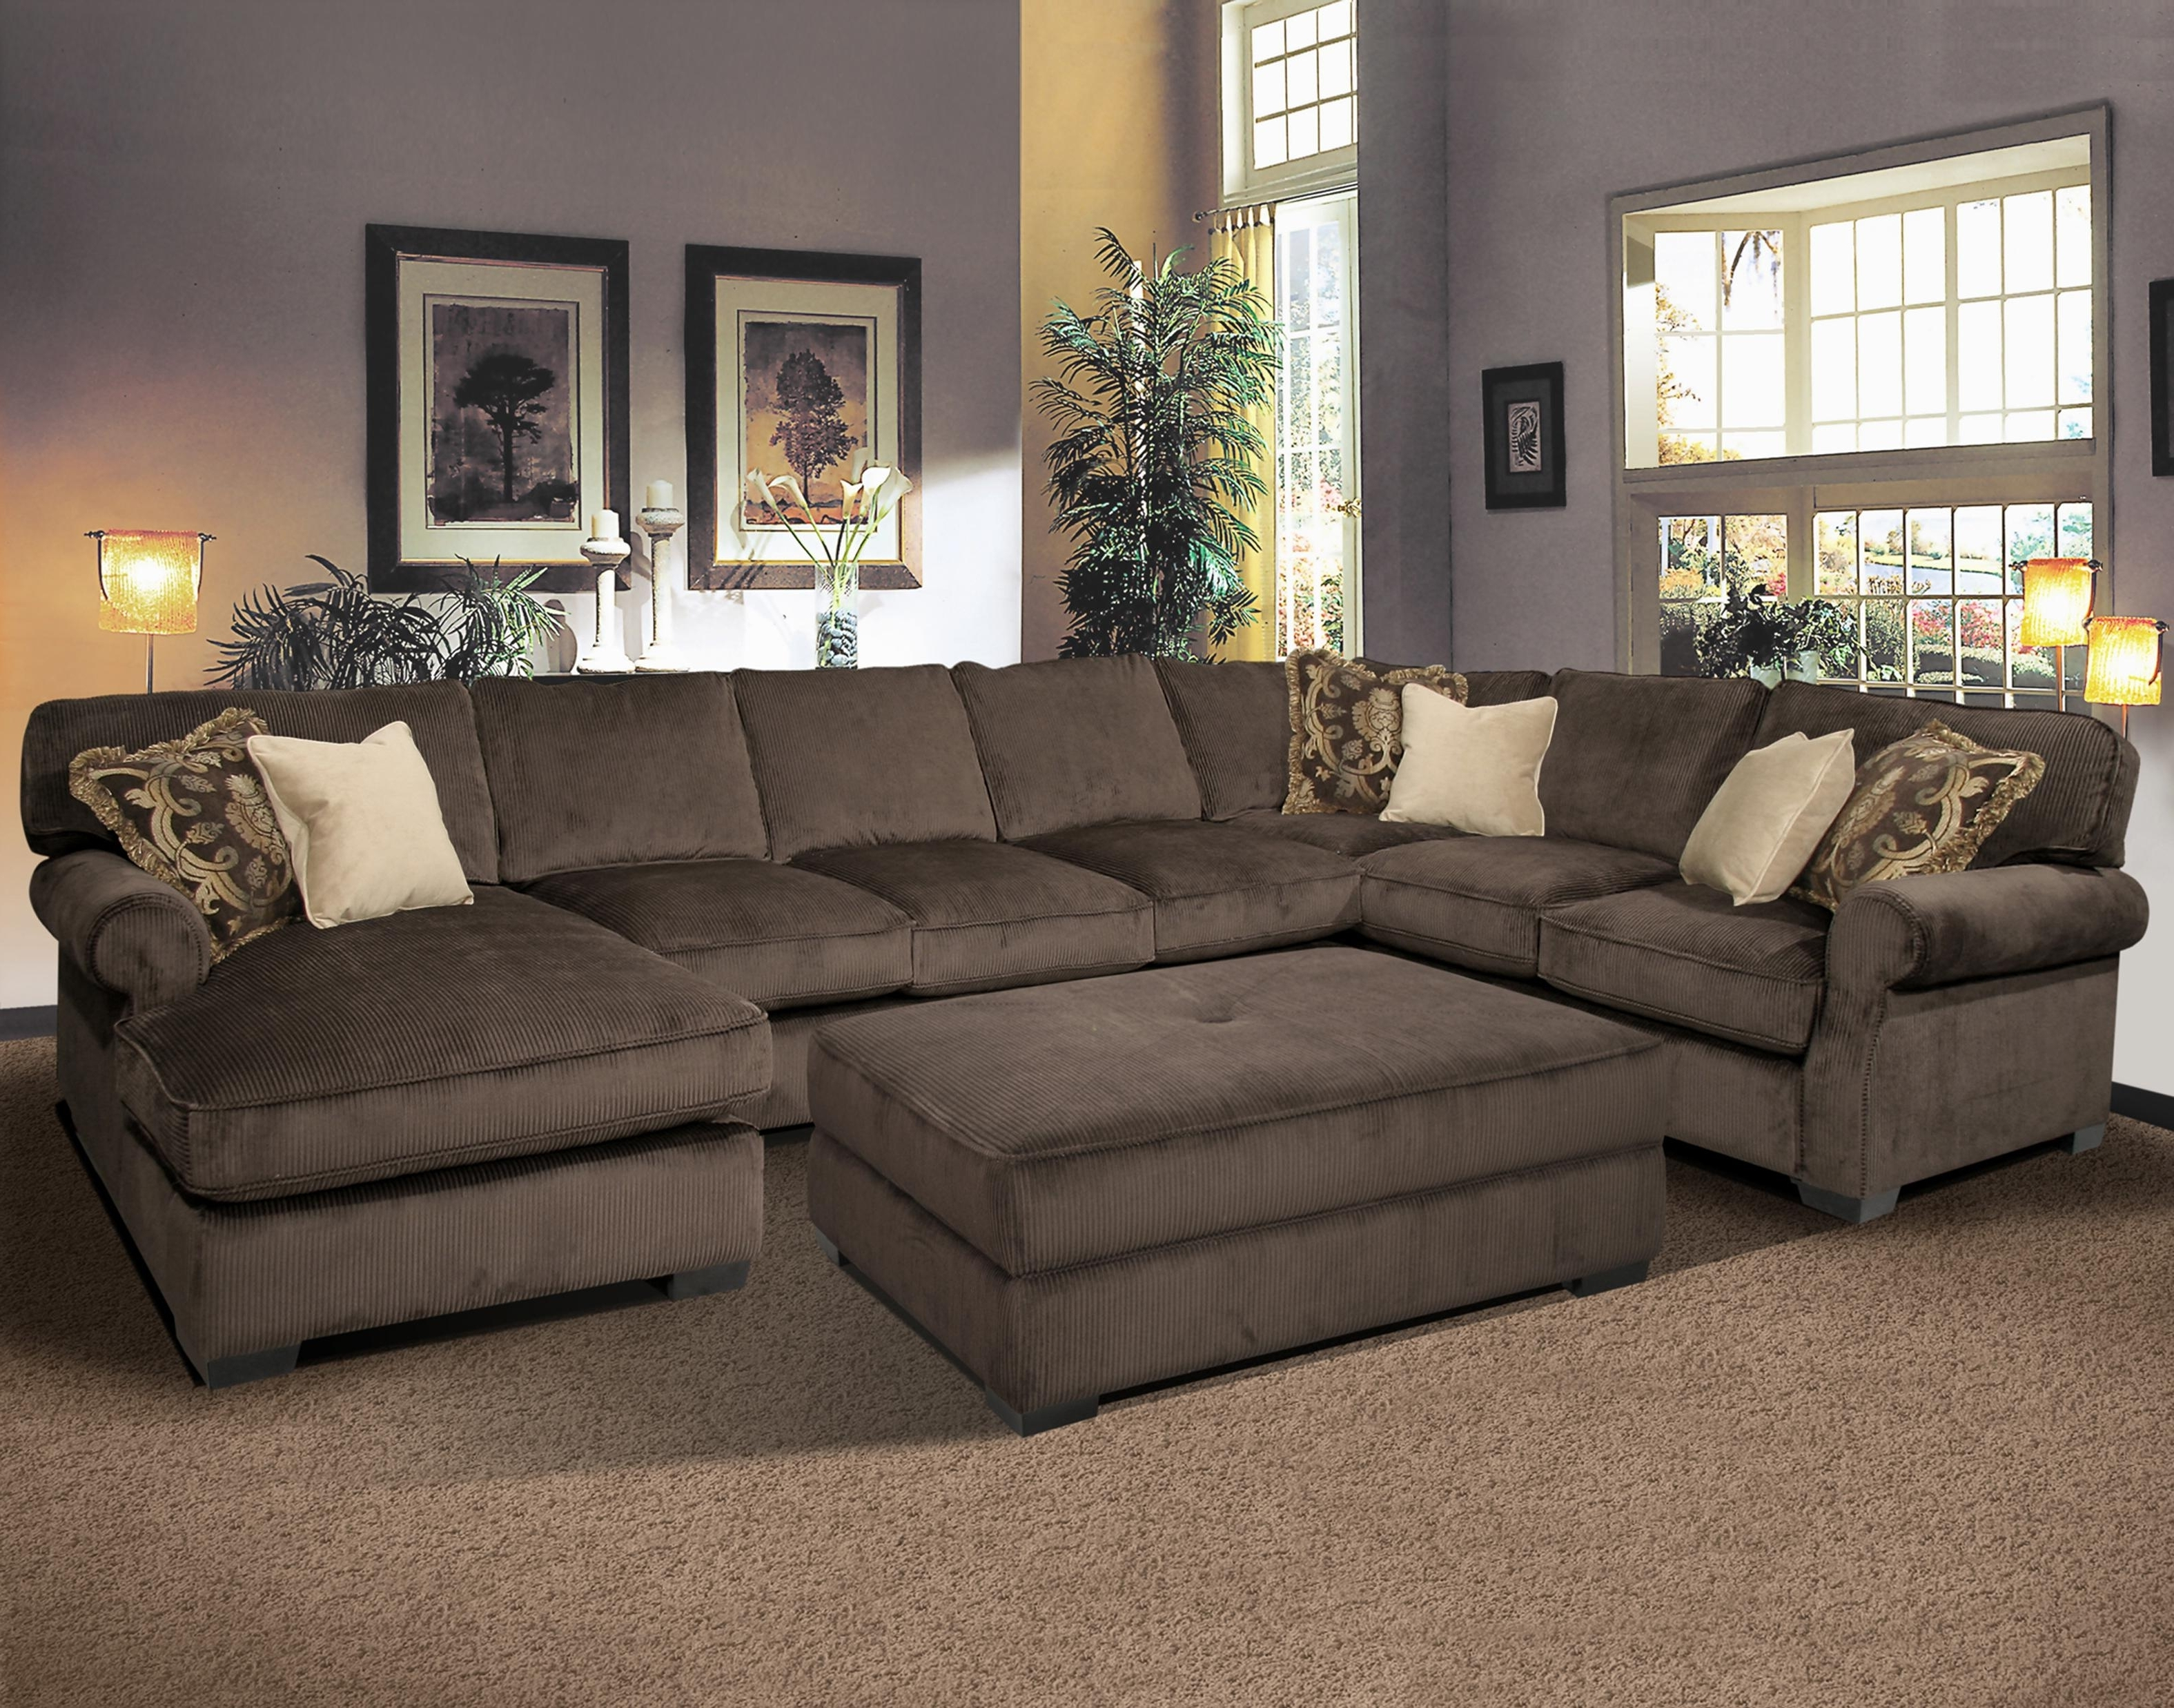 Most Recent Best Zane Sectional Sofa For Sofas Tulsa Ok With Decor Home Sofas In Tulsa Sectional Sofas (View 6 of 20)